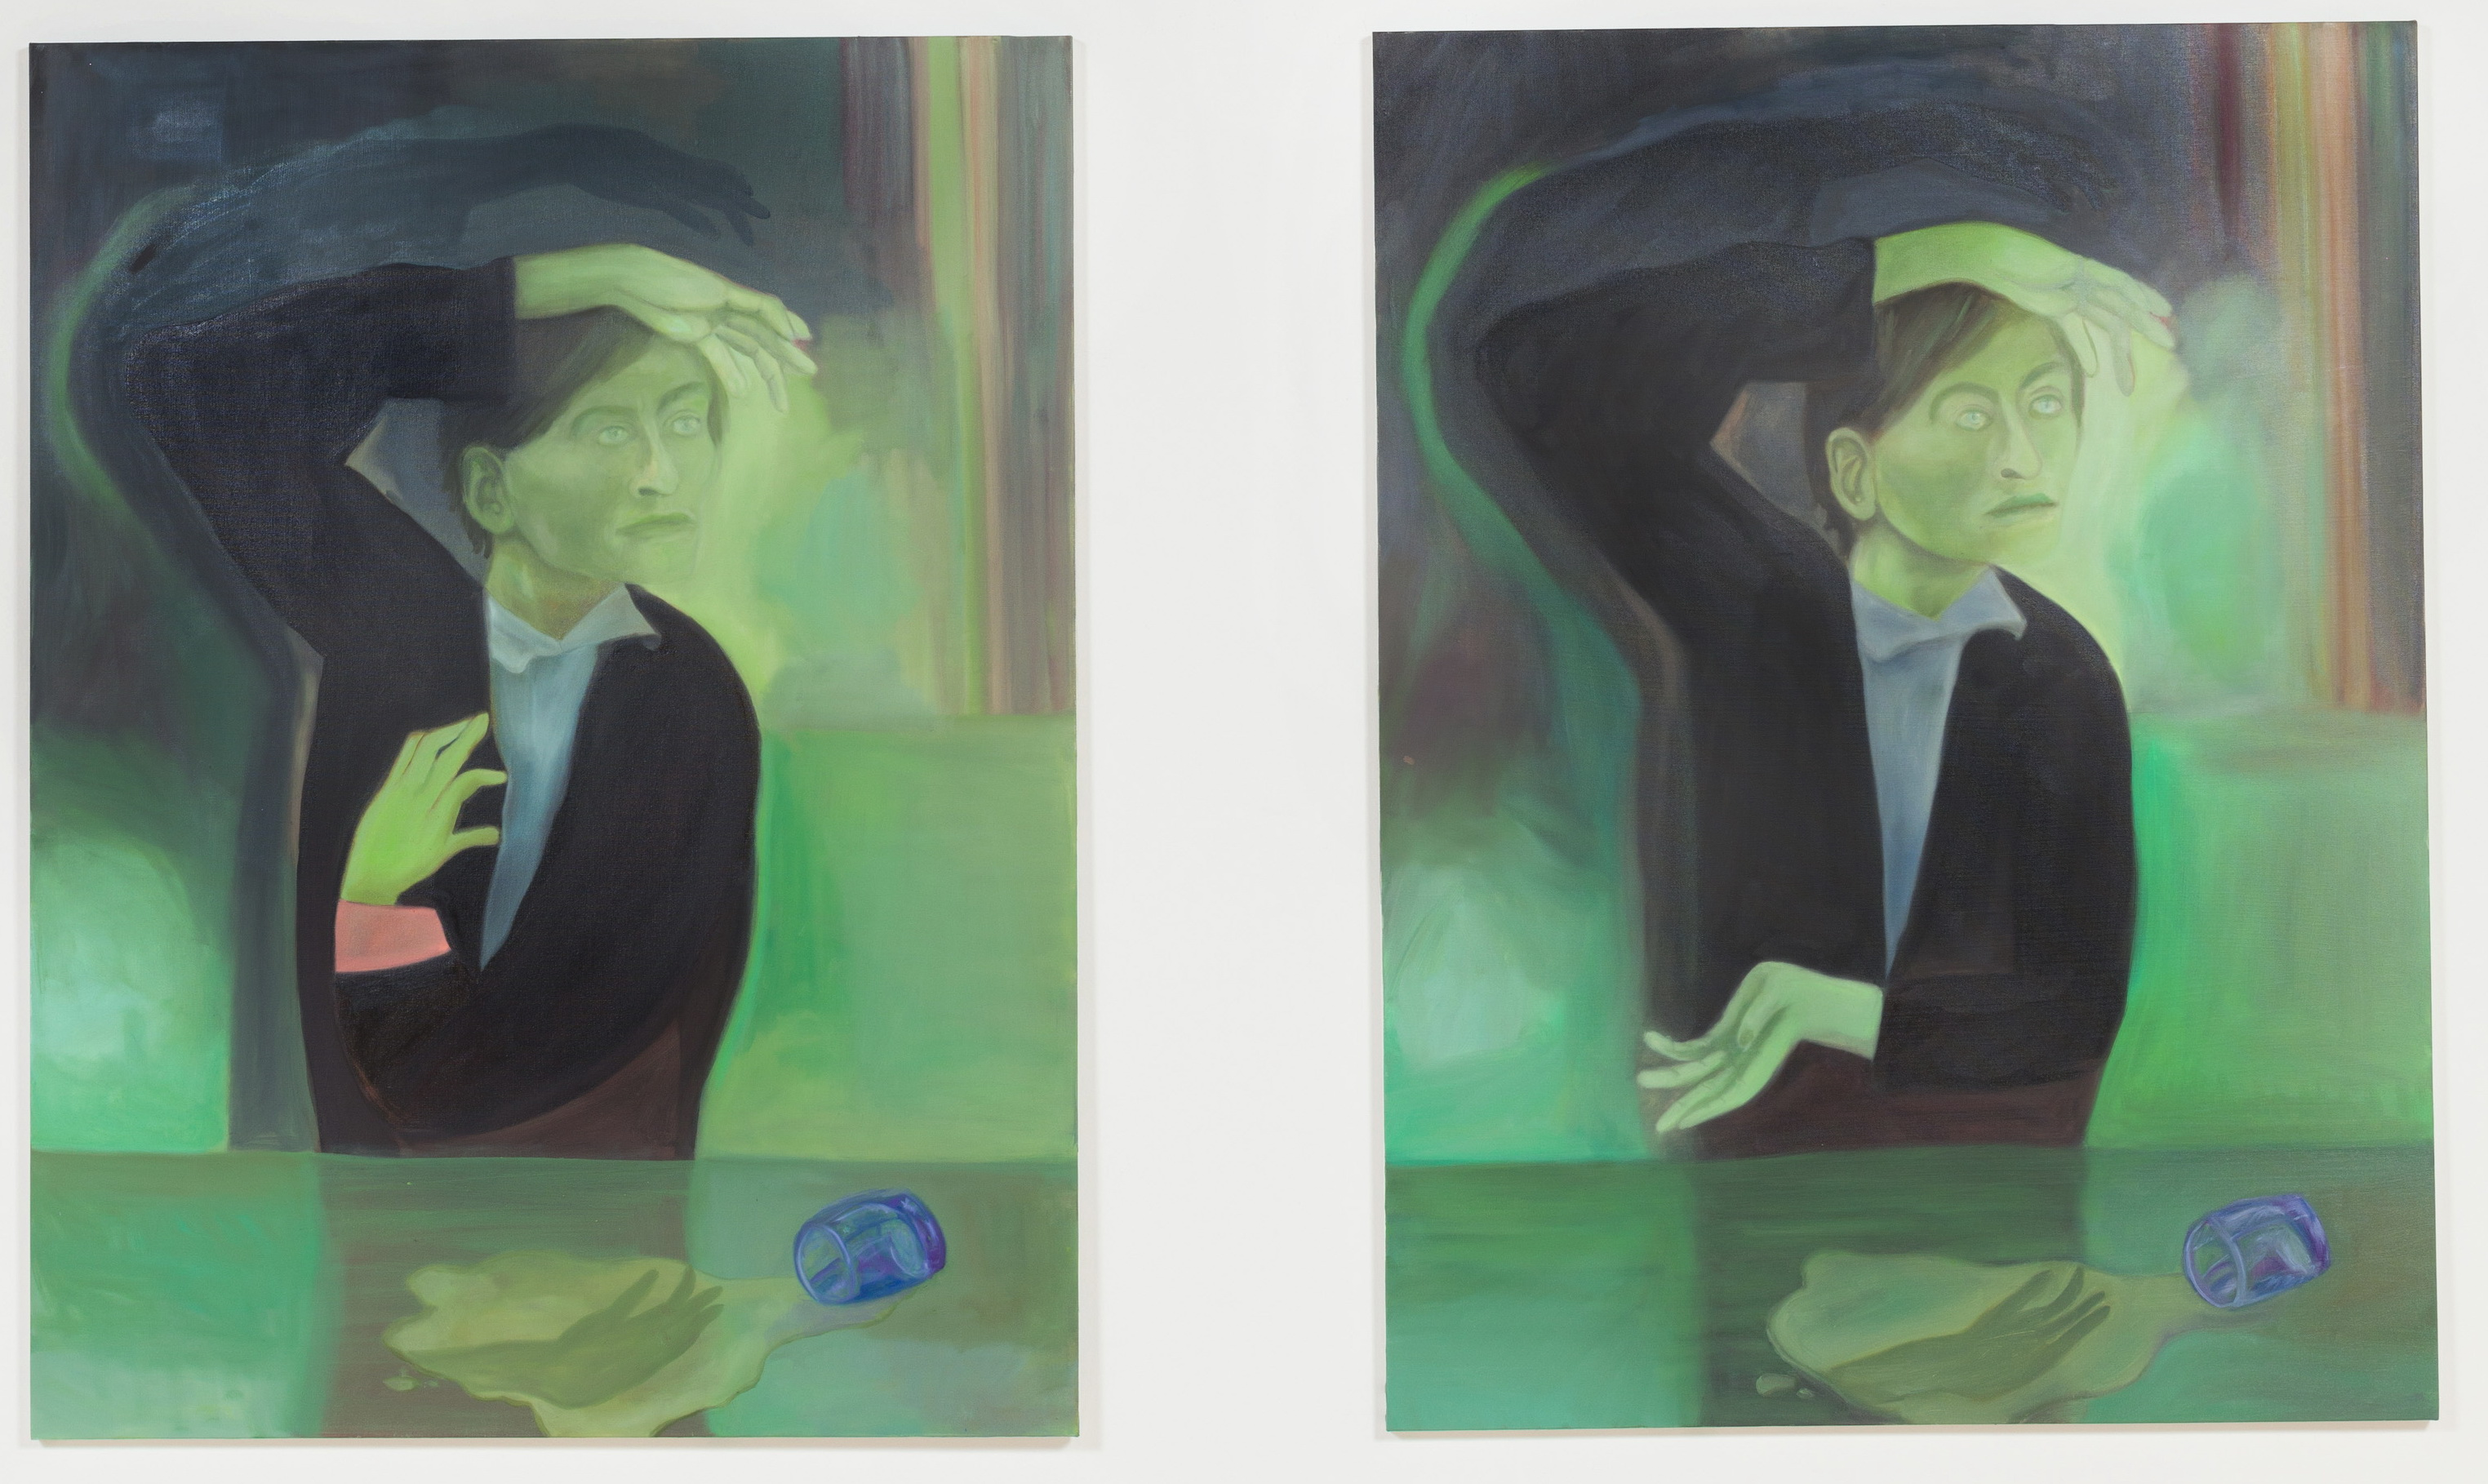 Jill Mulleady, The Green Room, I (2017); The Green Room, II (2017), ©Jill Mulleady, courtesy of the artist and Freedman Fitzpatrick Gallery, Los Angeles.